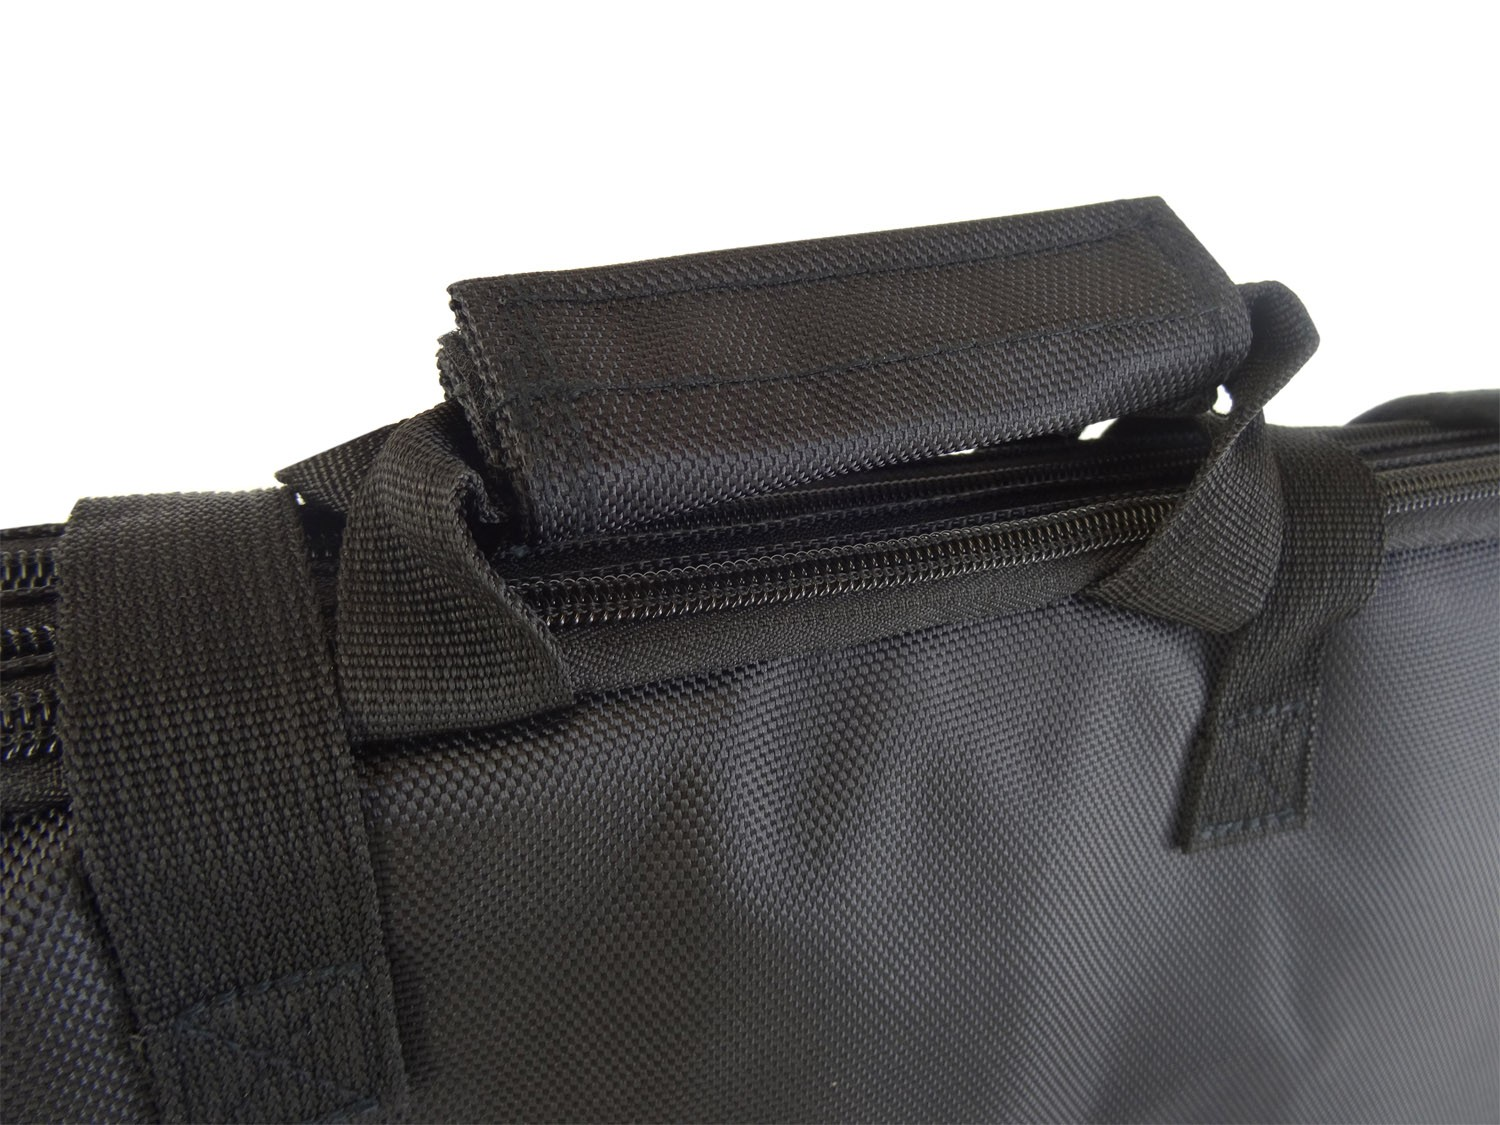 Dick Professional Knife Bag Capacity For 34 Knives